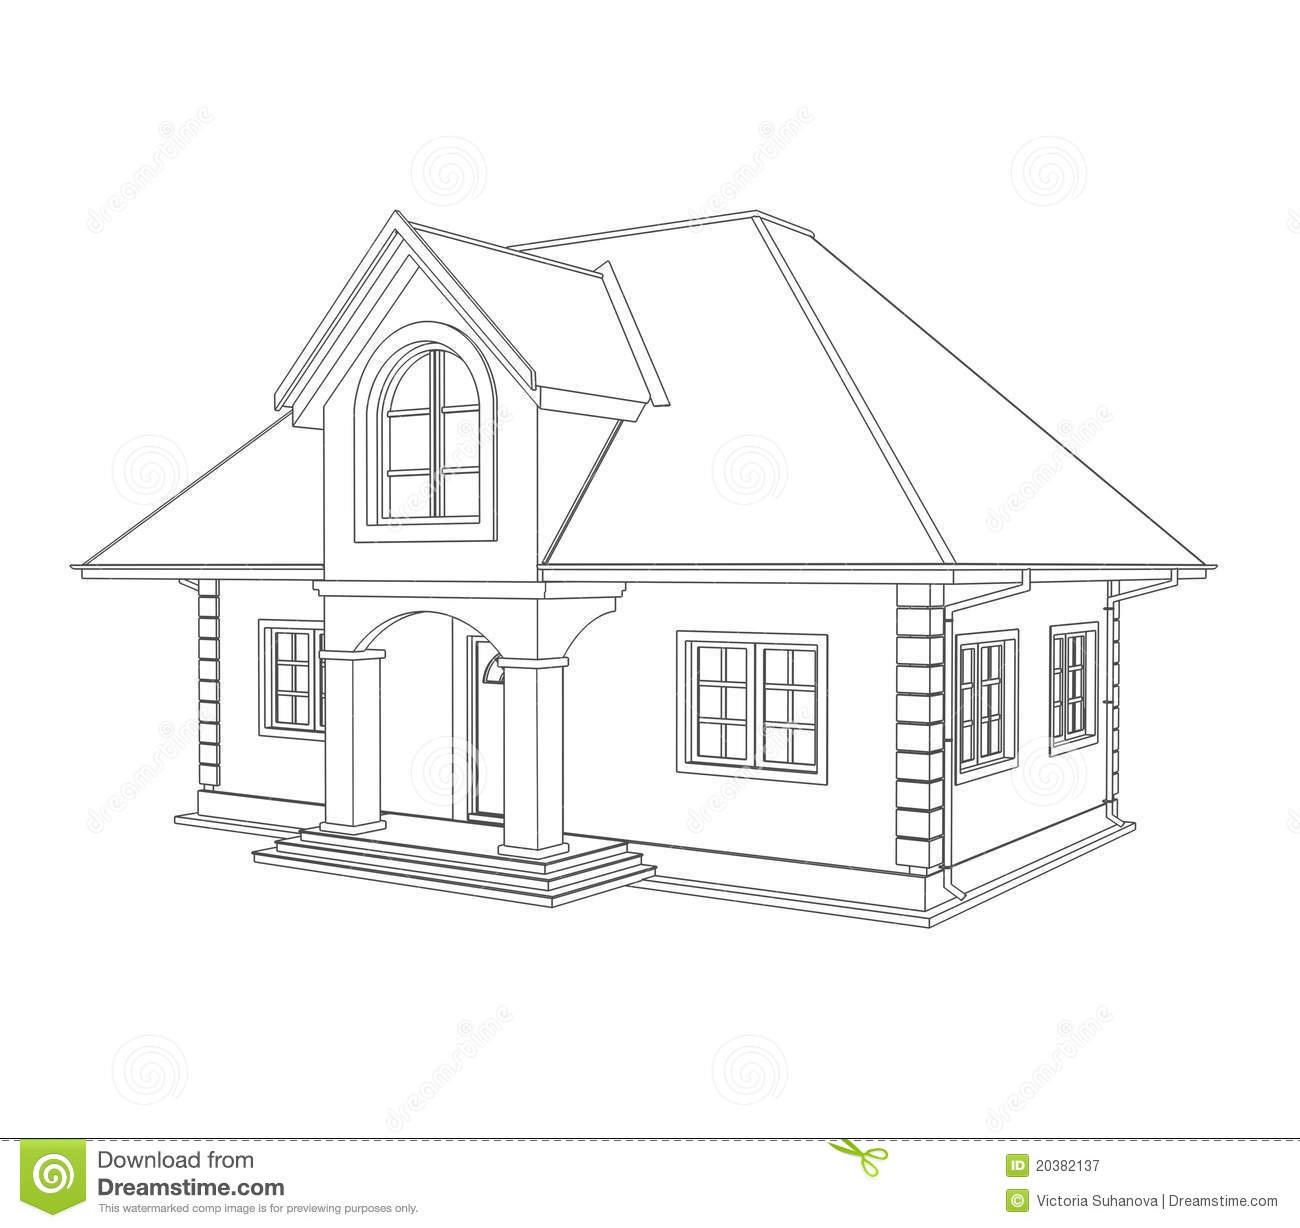 House technical draw royalty free stock photography image 20382137 Draw your house